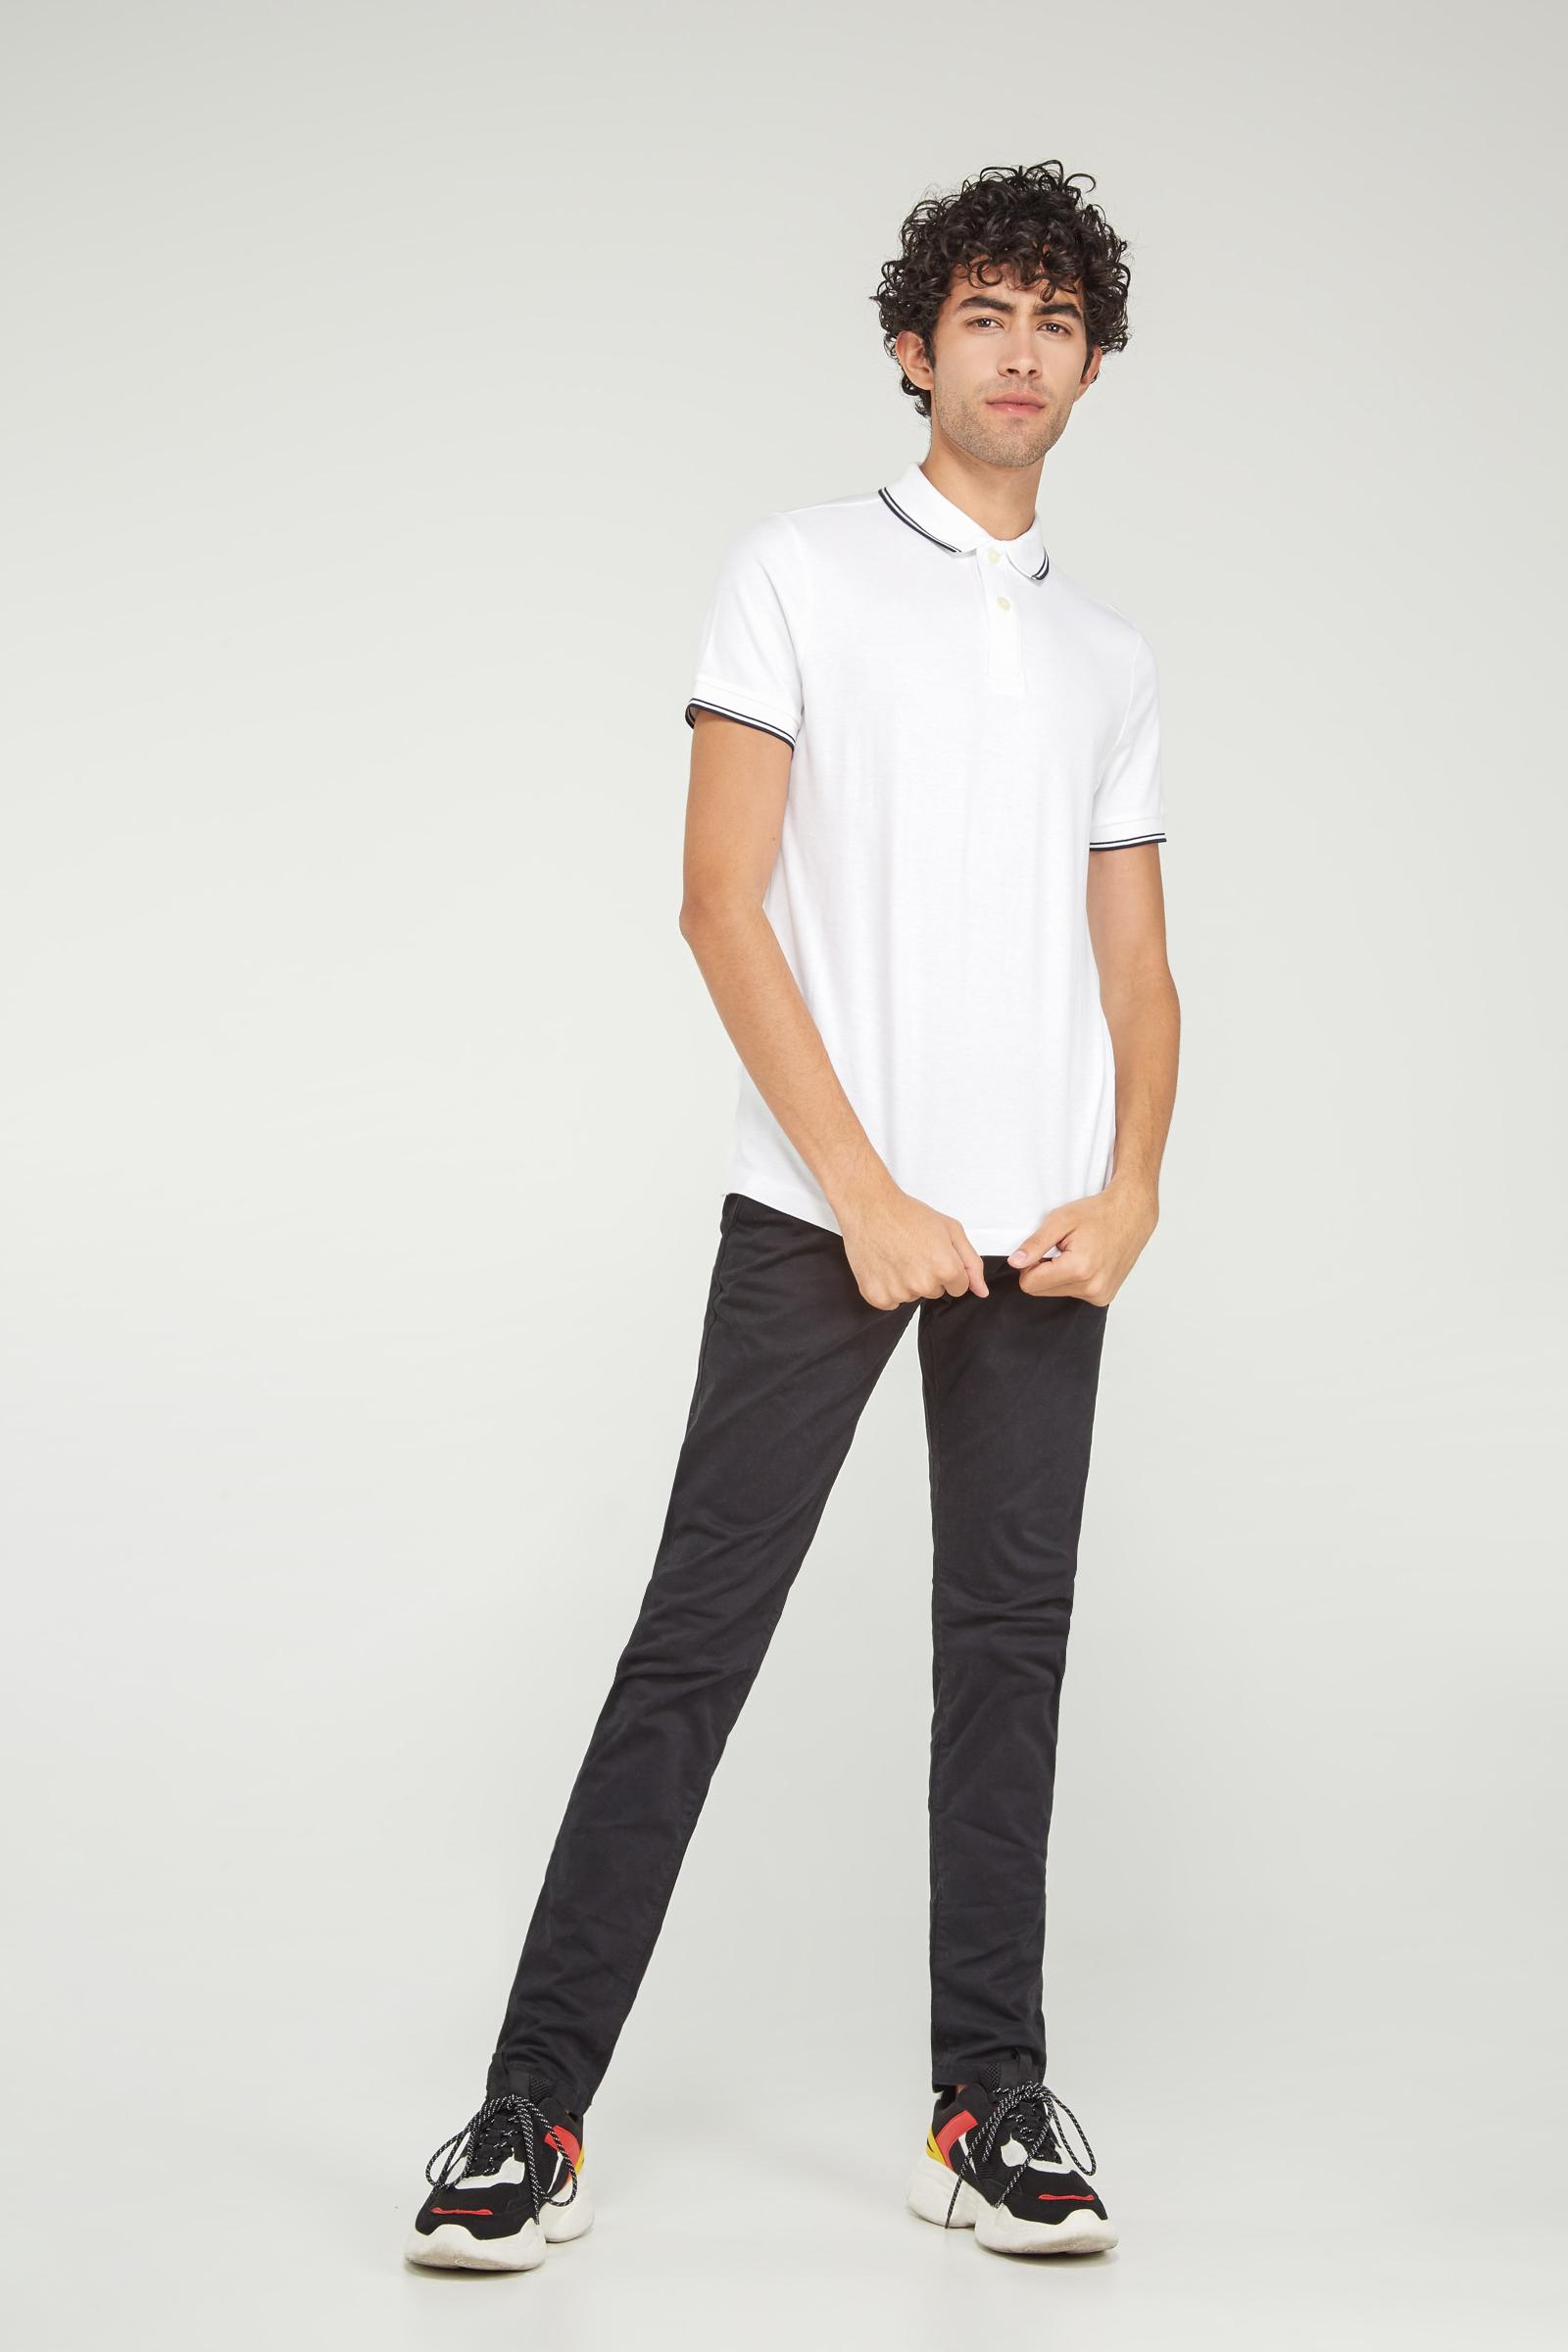 KOAJ-PANTALON KOAJ CHINO SUPER SLIM 5 4/19